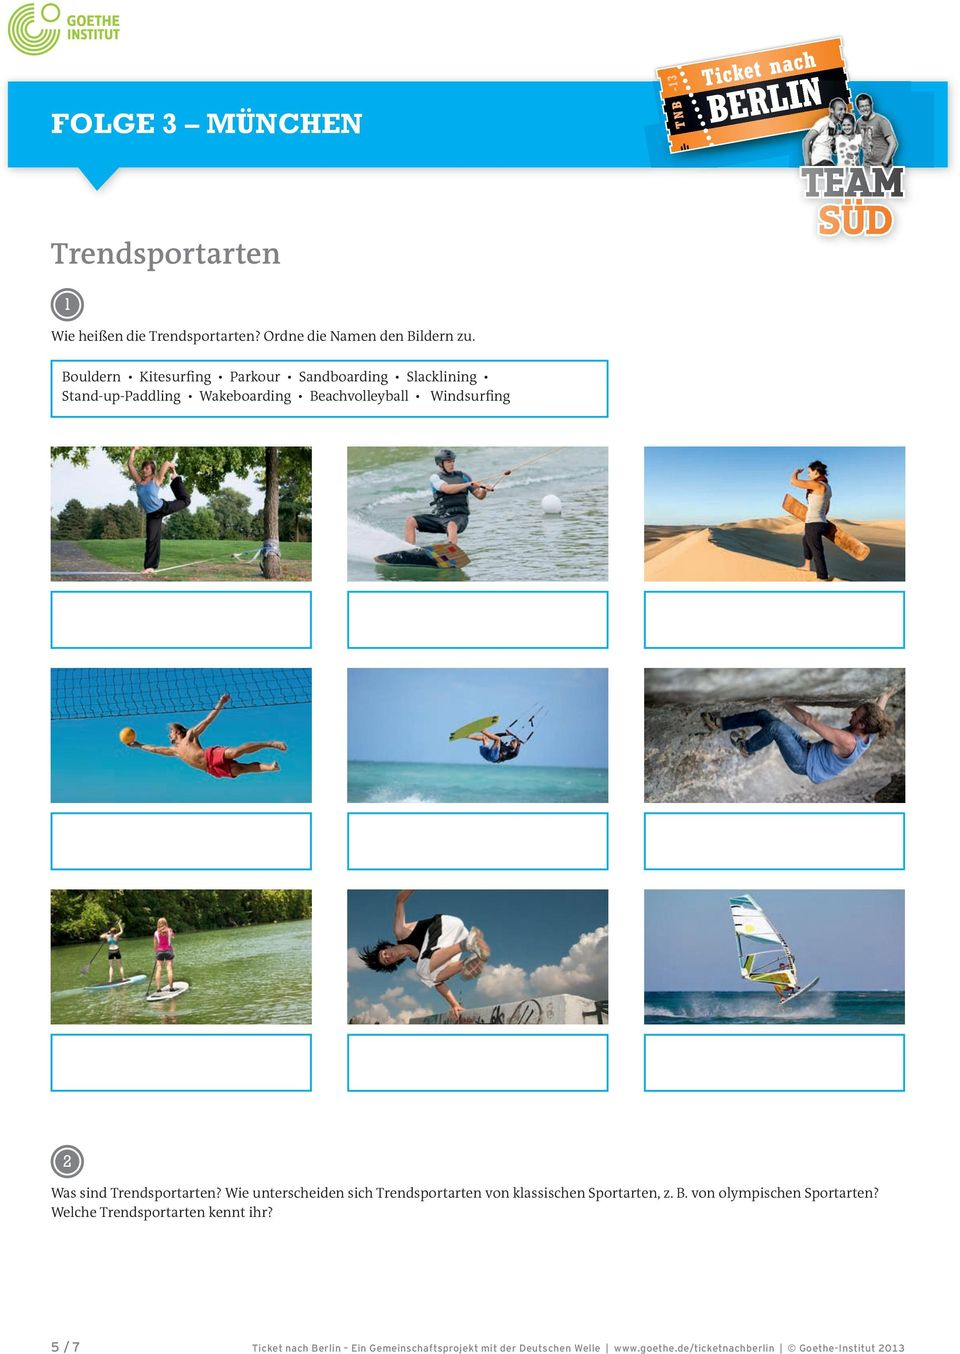 Beachvolleyball Windsurfing Was sind Trendsportarten?